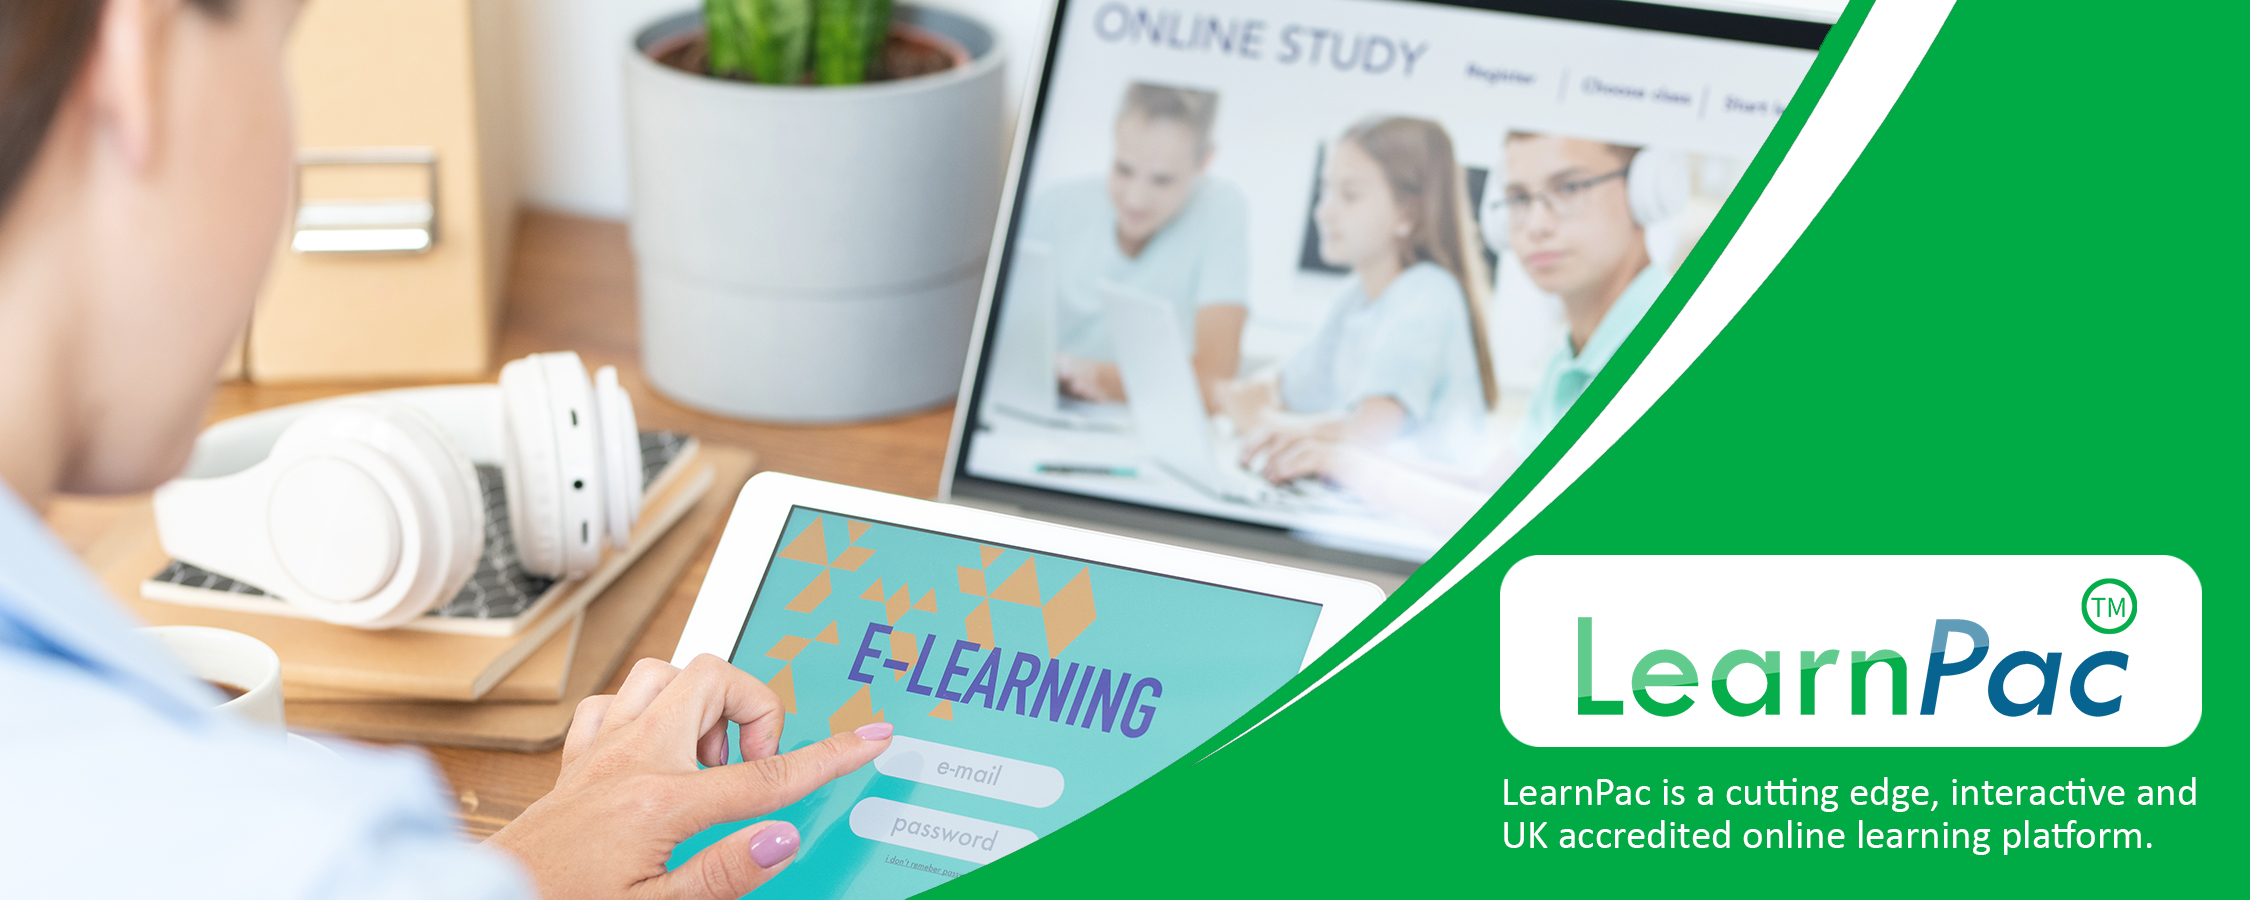 Consent in Health and Social Care - Online Learning Courses - E-Learning Courses - LearnPac Systems UK -